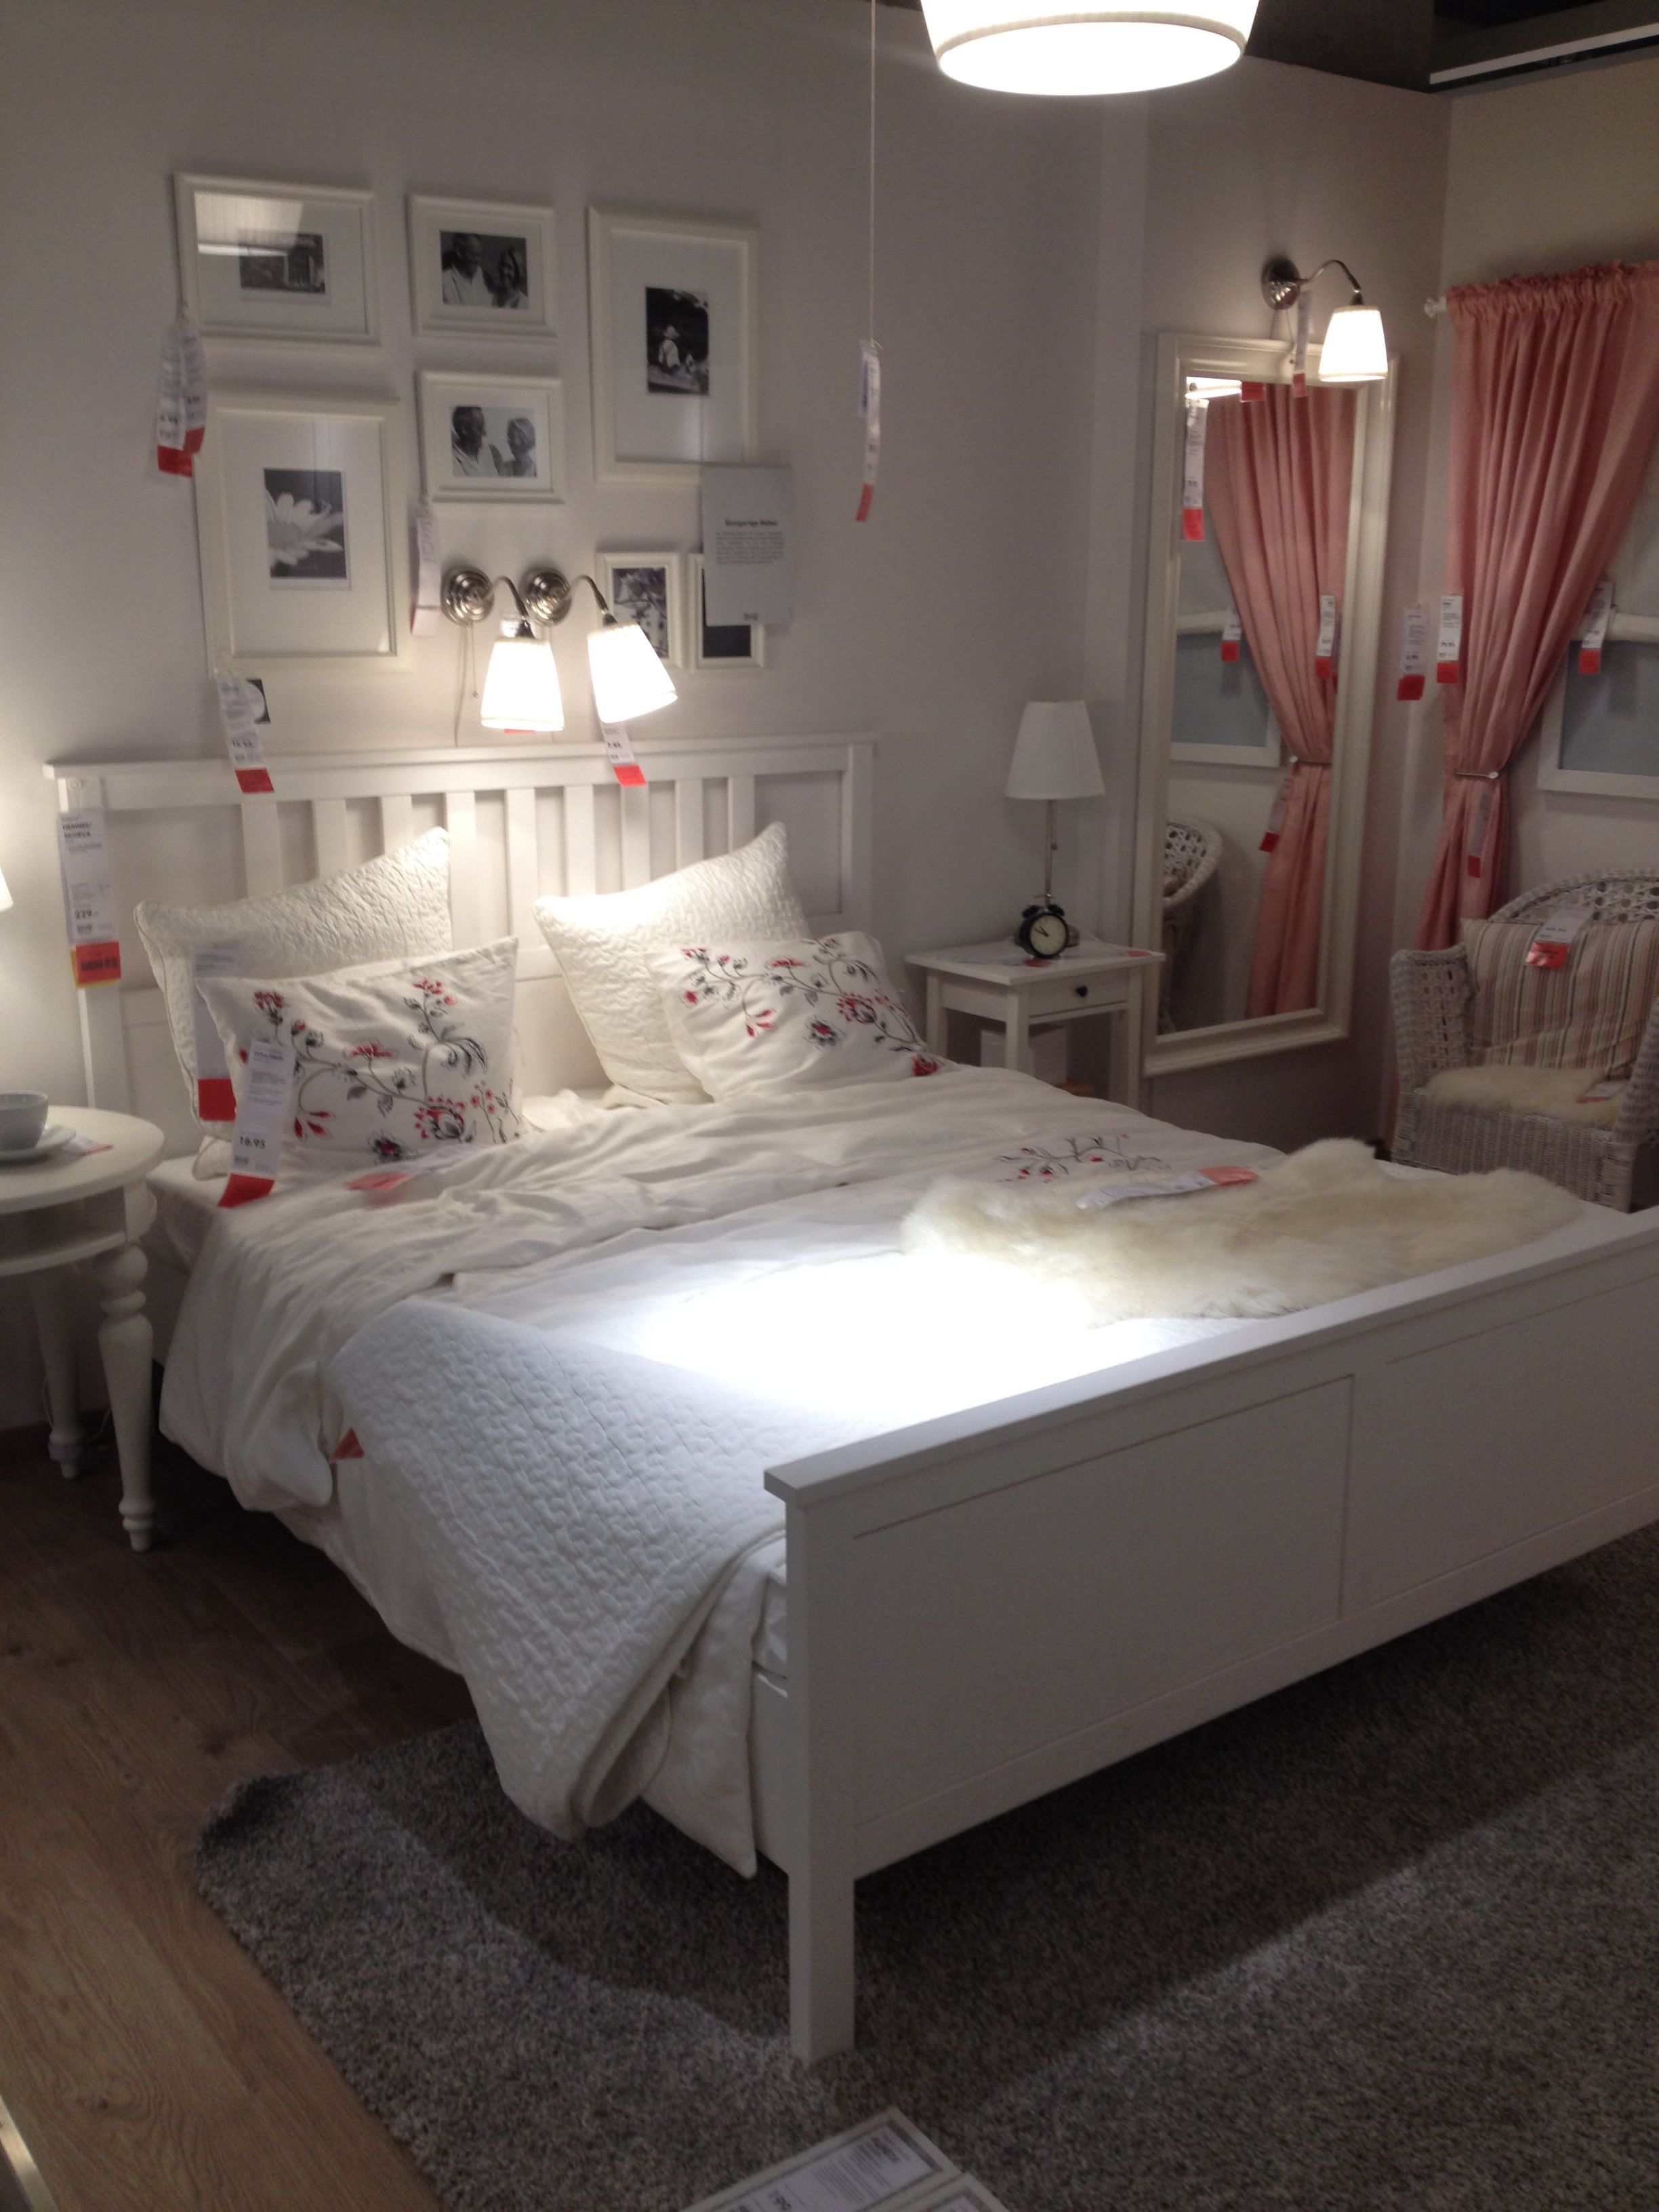 White Ikea Hemnes Bed :-)